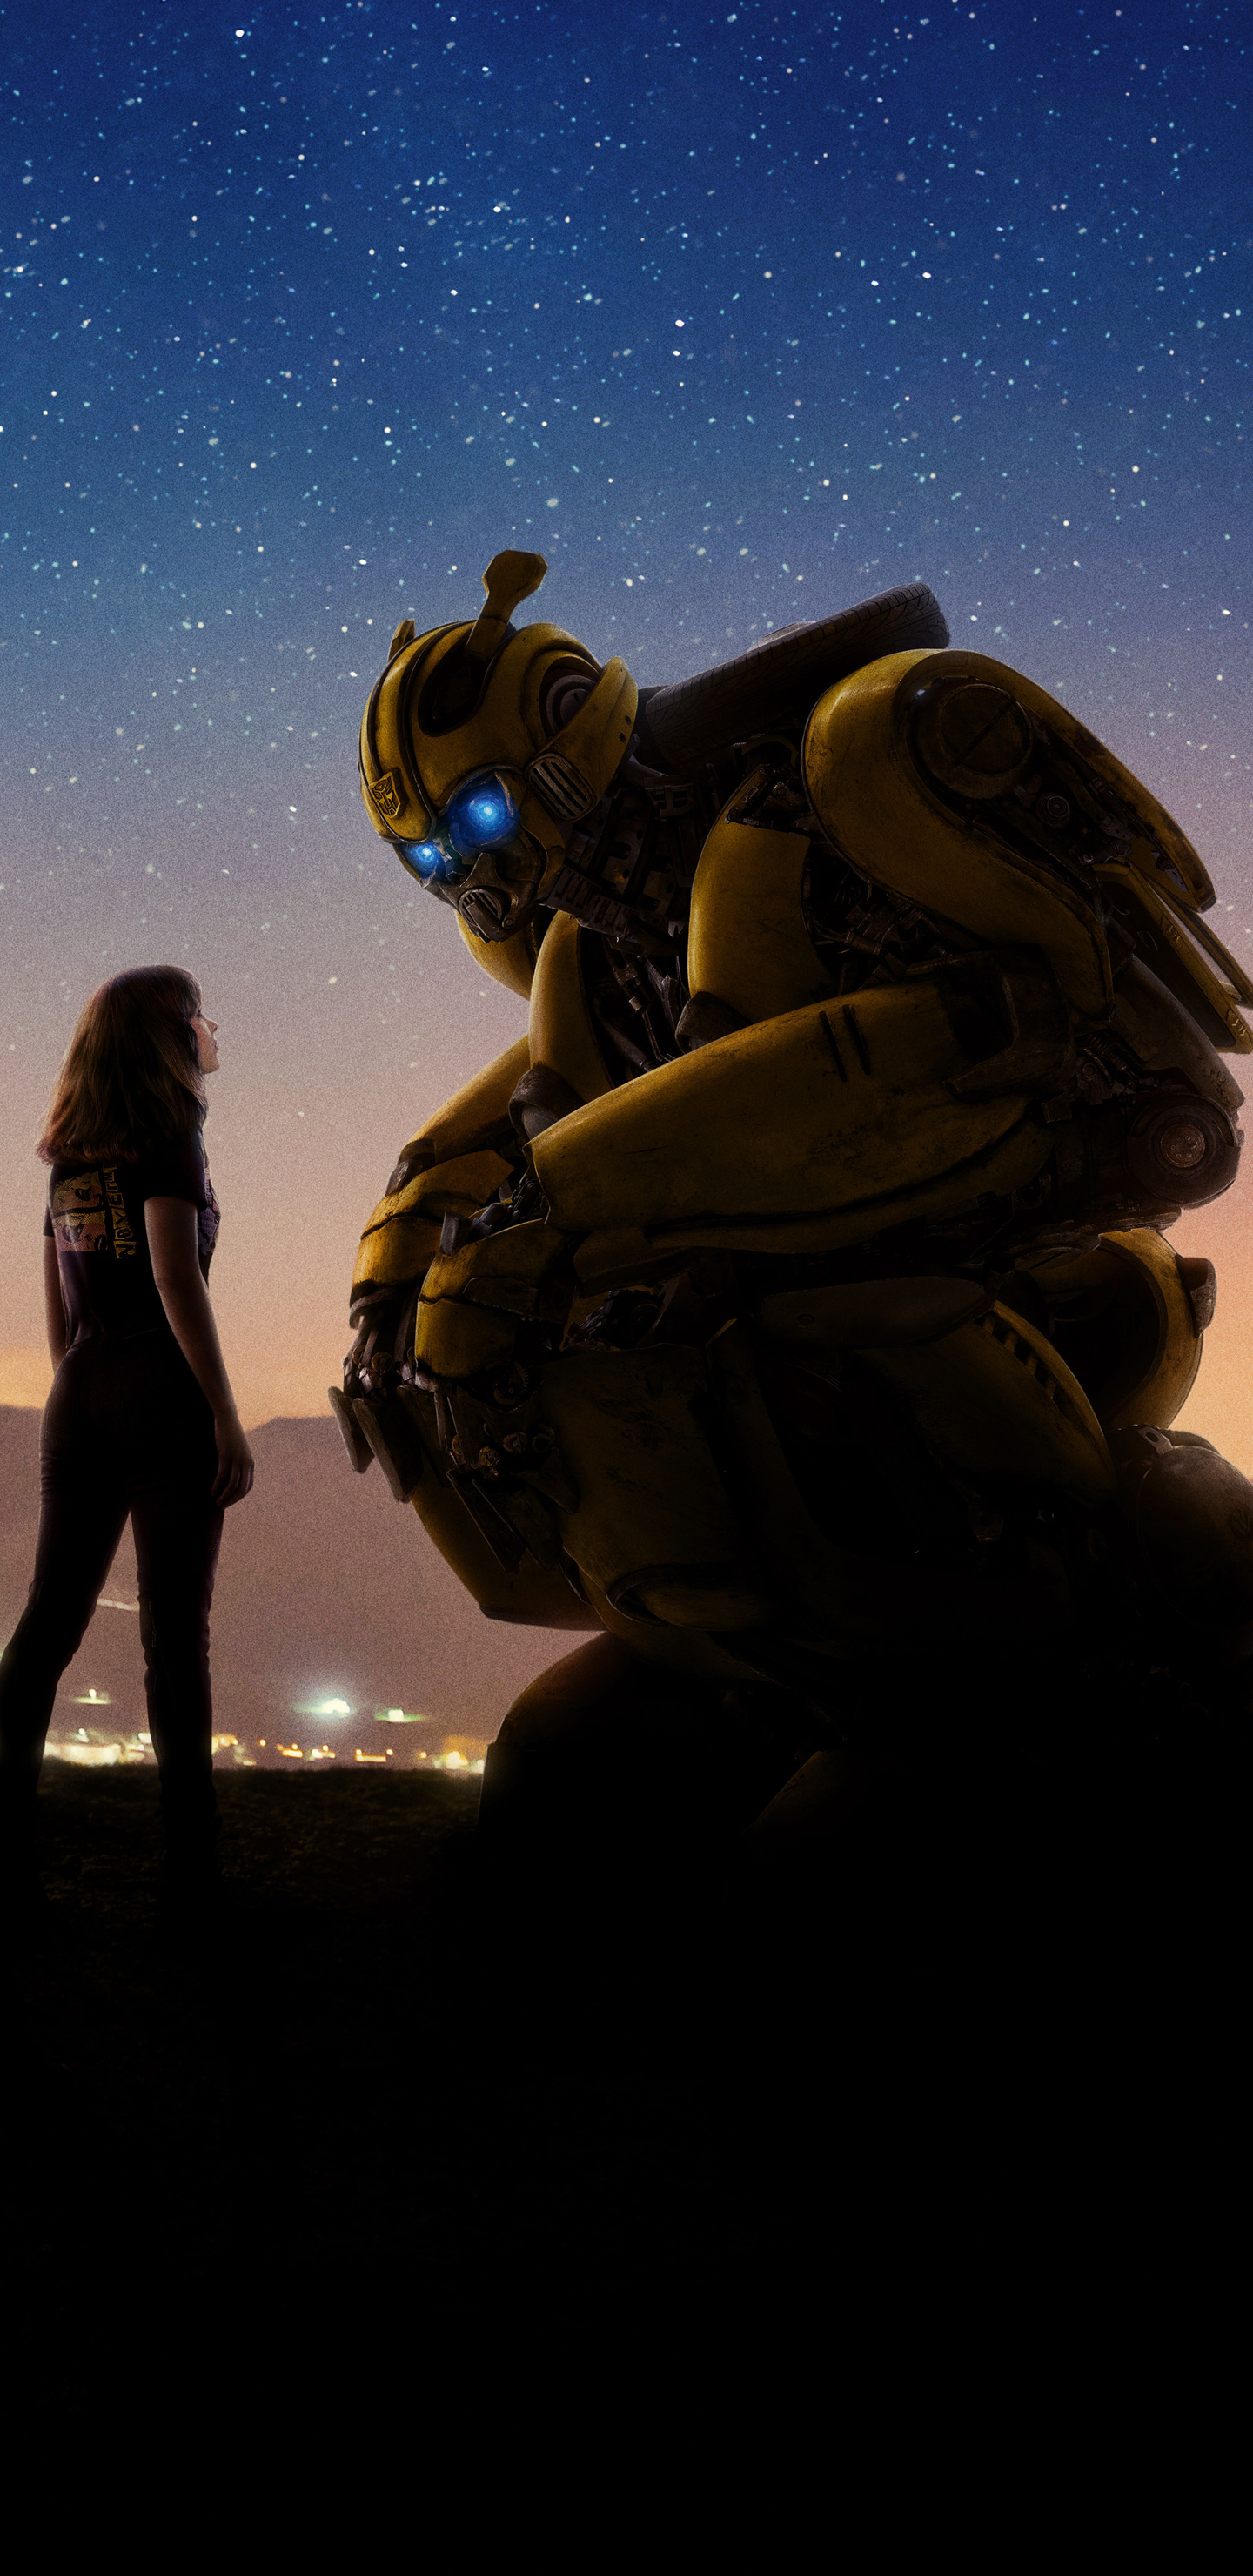 1440x2960 Bumblebee Movie 2018 Cool New Poster 5k Samsung ...